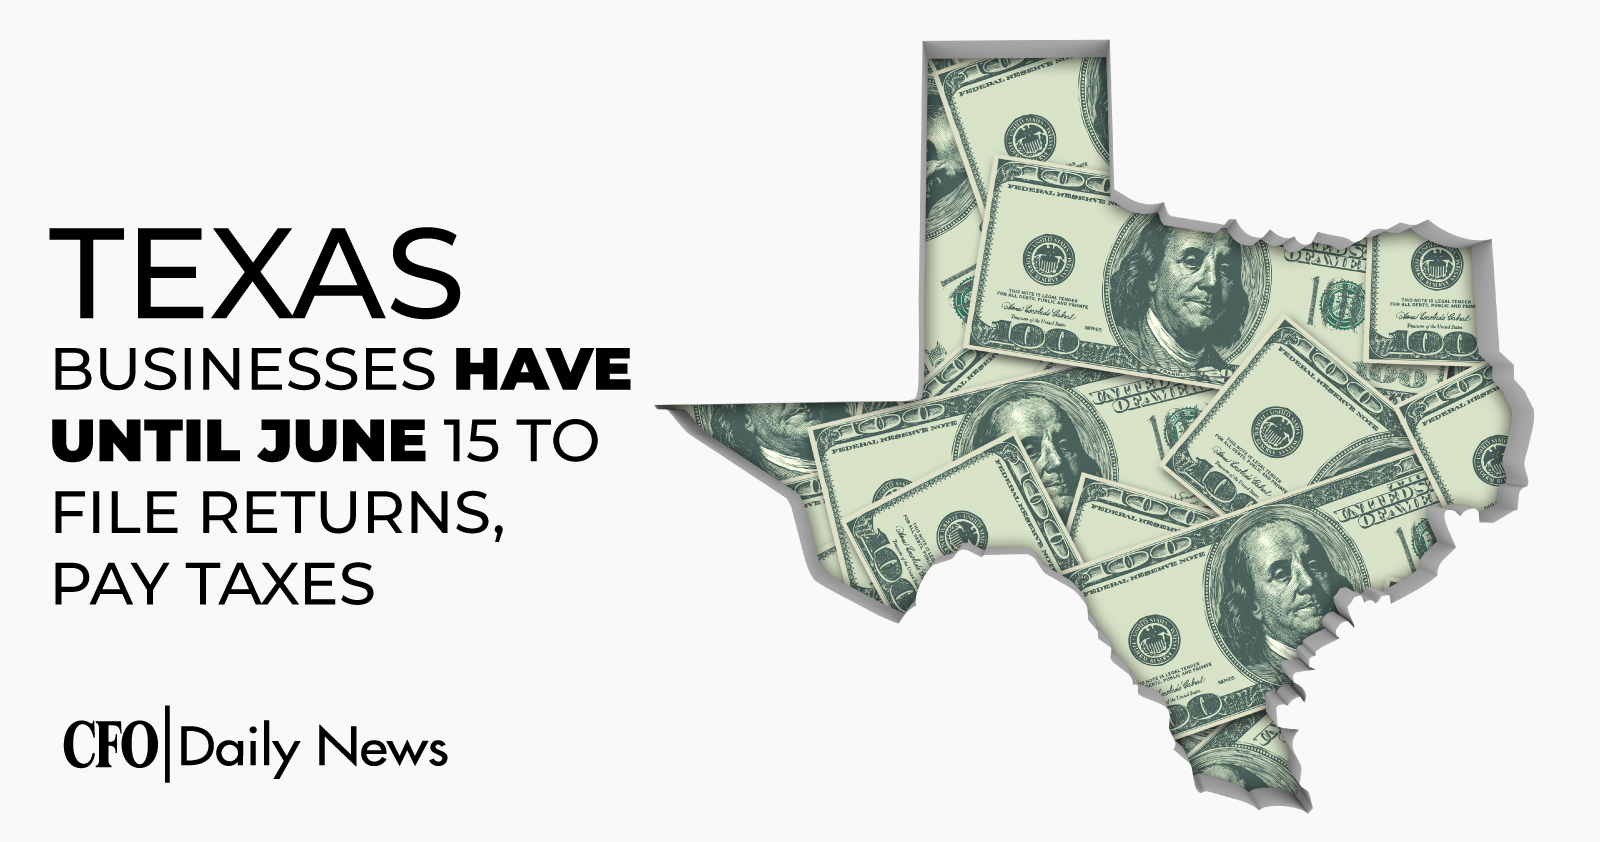 Texas Businesses Have Until June 15 To File Returns Pay Taxes